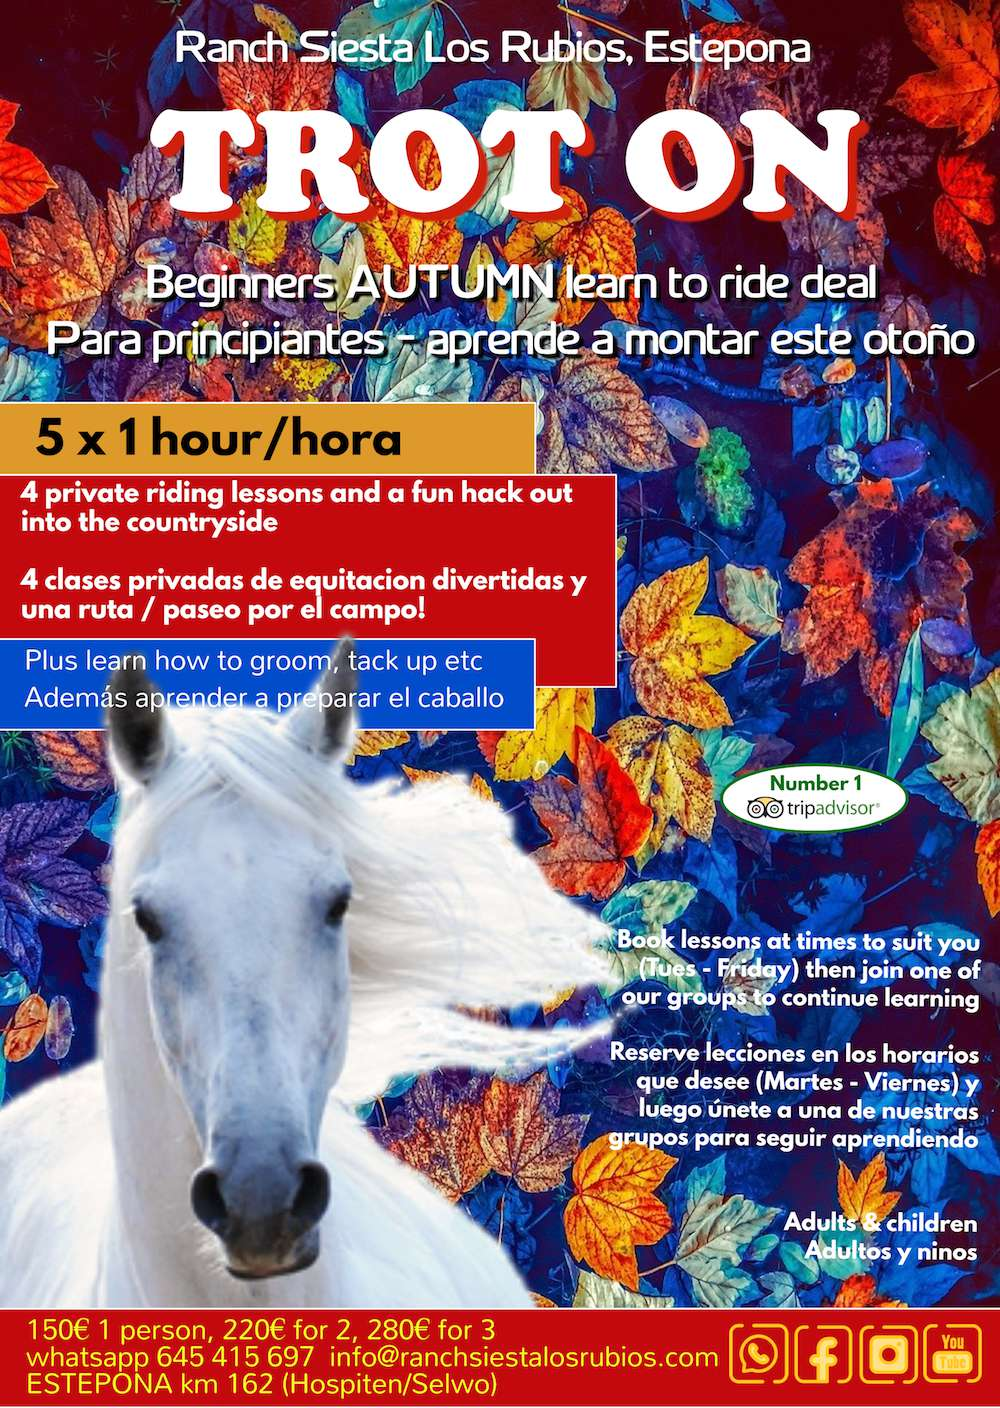 Learn to horse ride at Ranch Siesta Los Rubios in Estepona